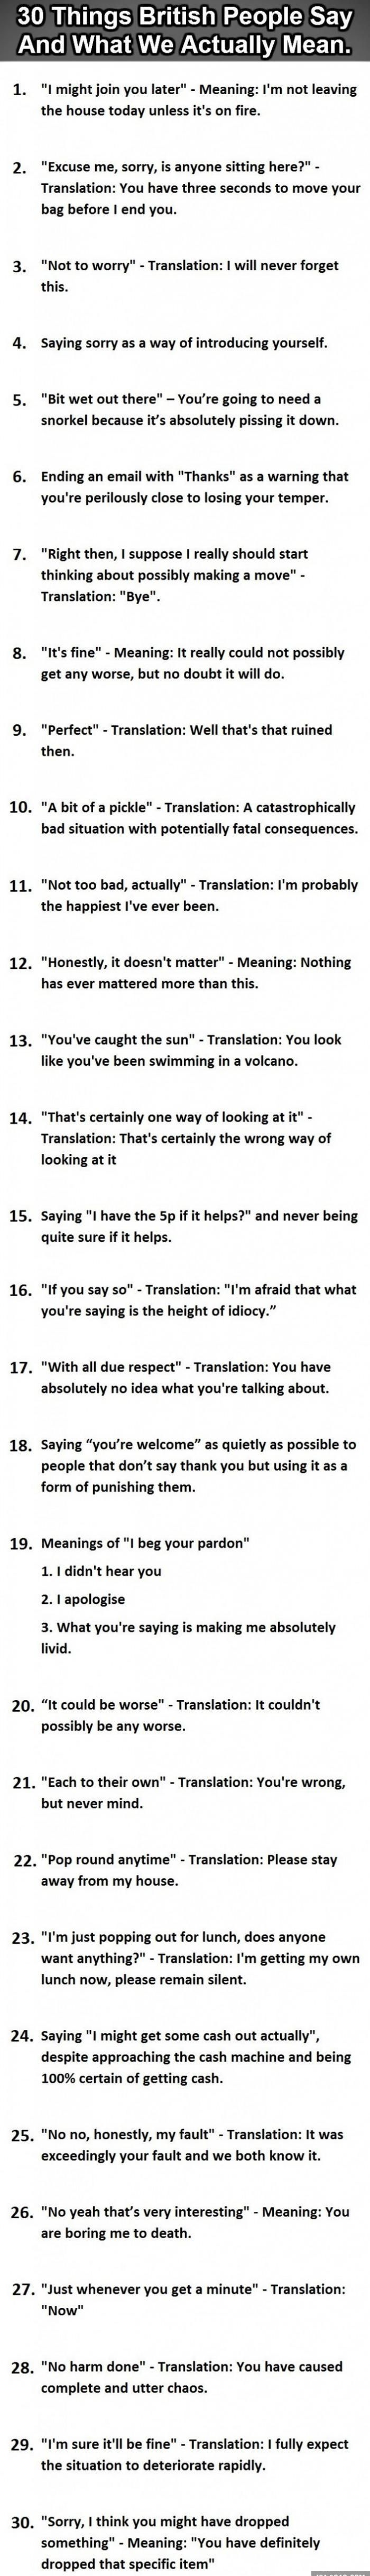 Things British people say and what they actually mean.